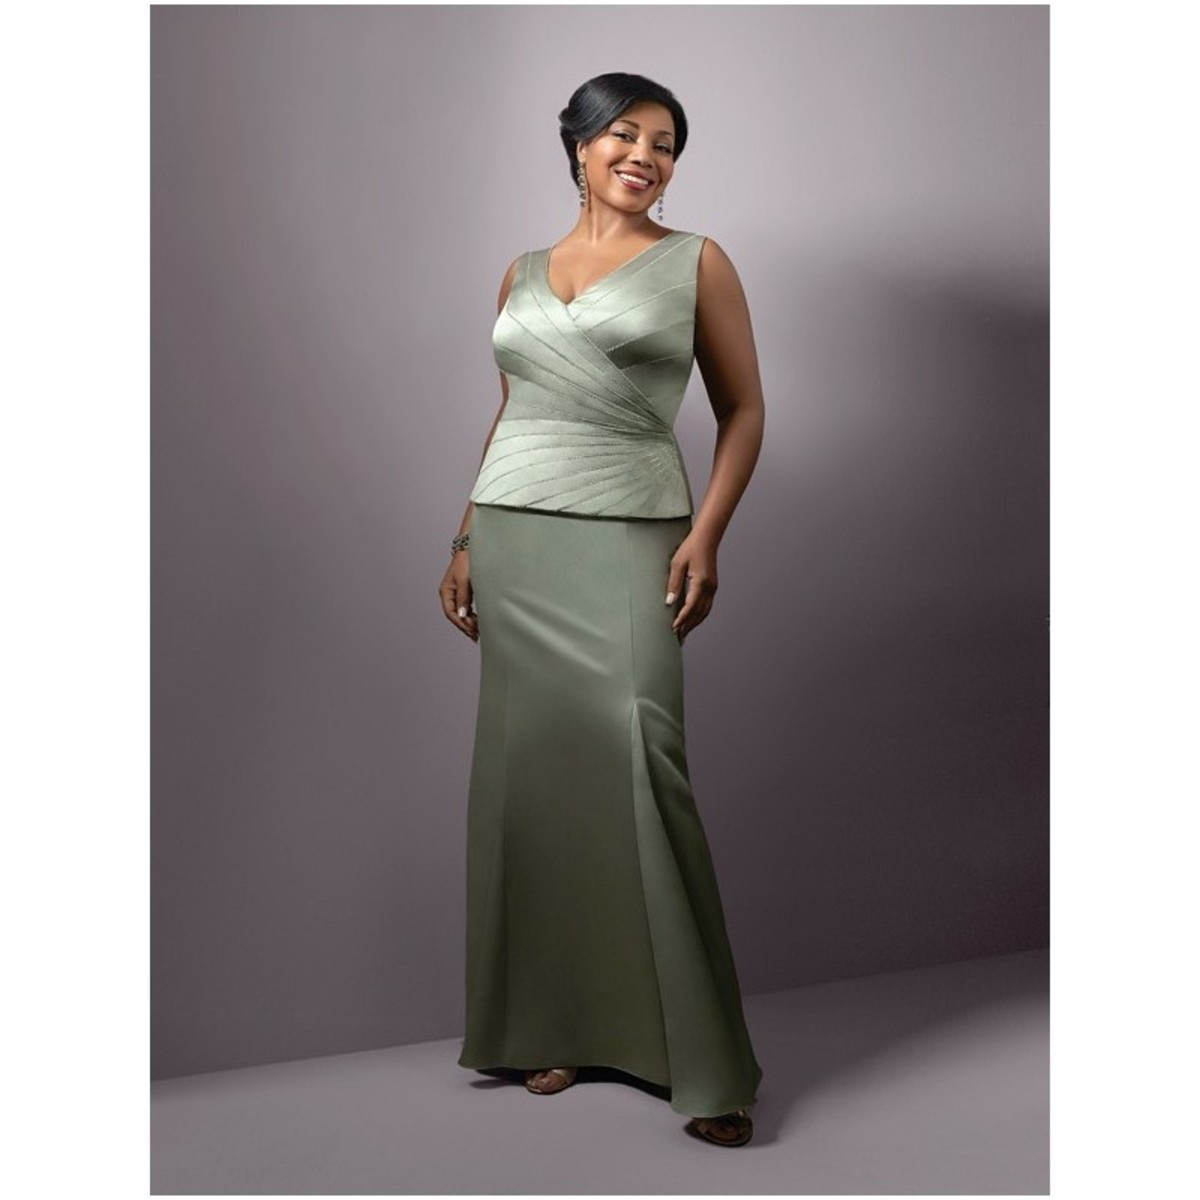 Plus Size Mother Of The Bride Wedding Dress